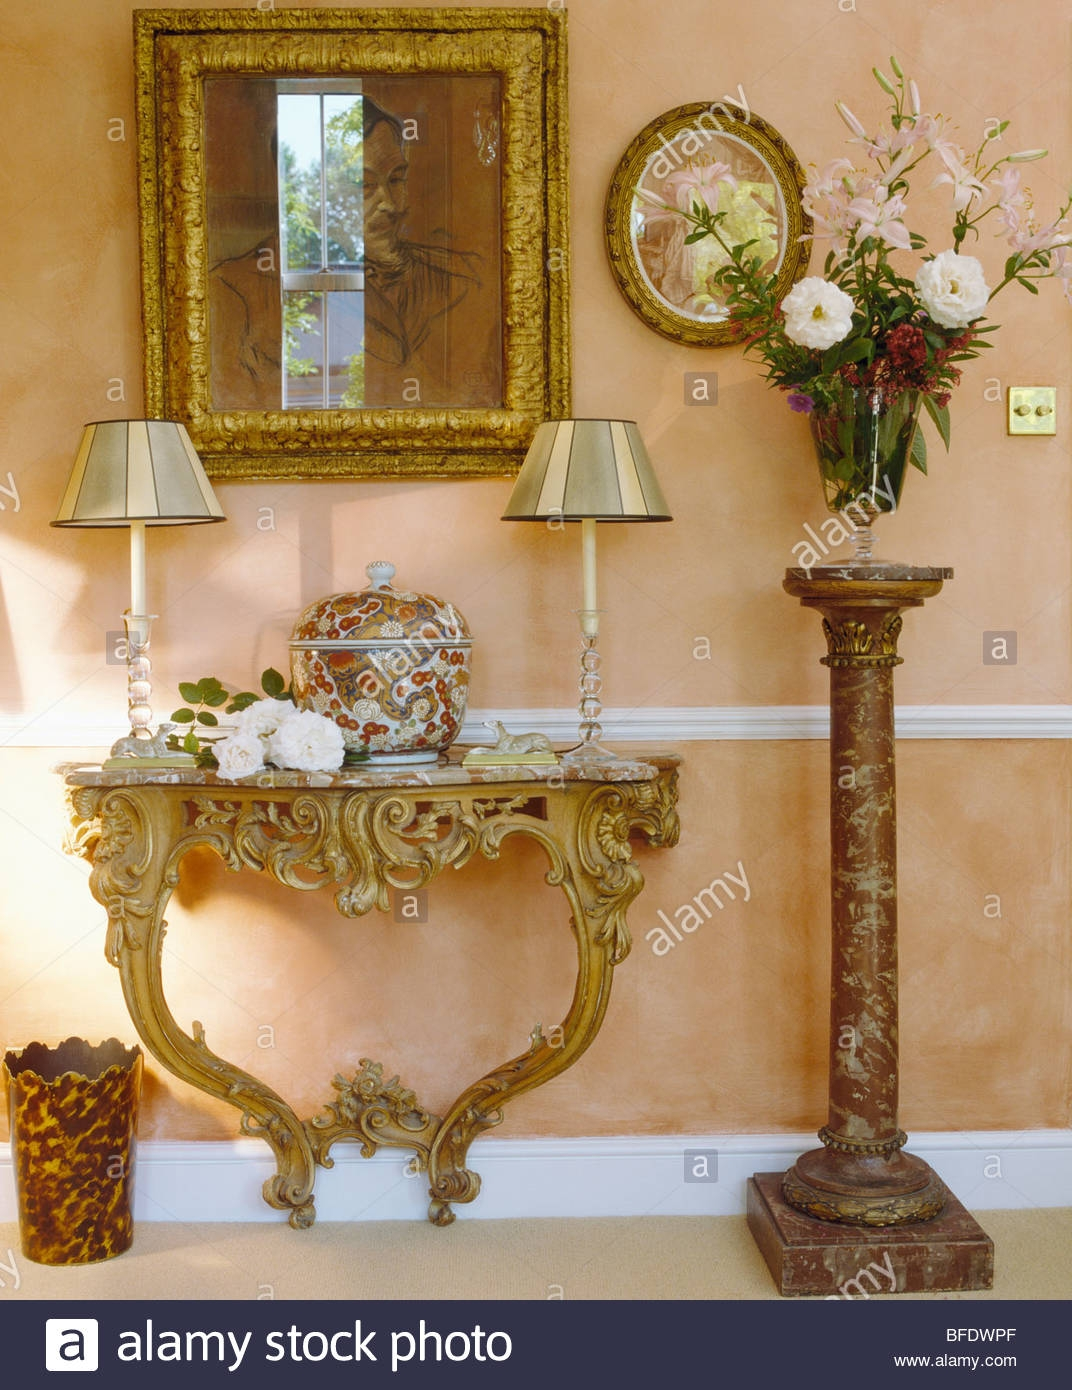 Gilt Mirror Above Ornate Baroque Console Table In Traditional Throughout Tall Ornate Mirror (Image 4 of 15)